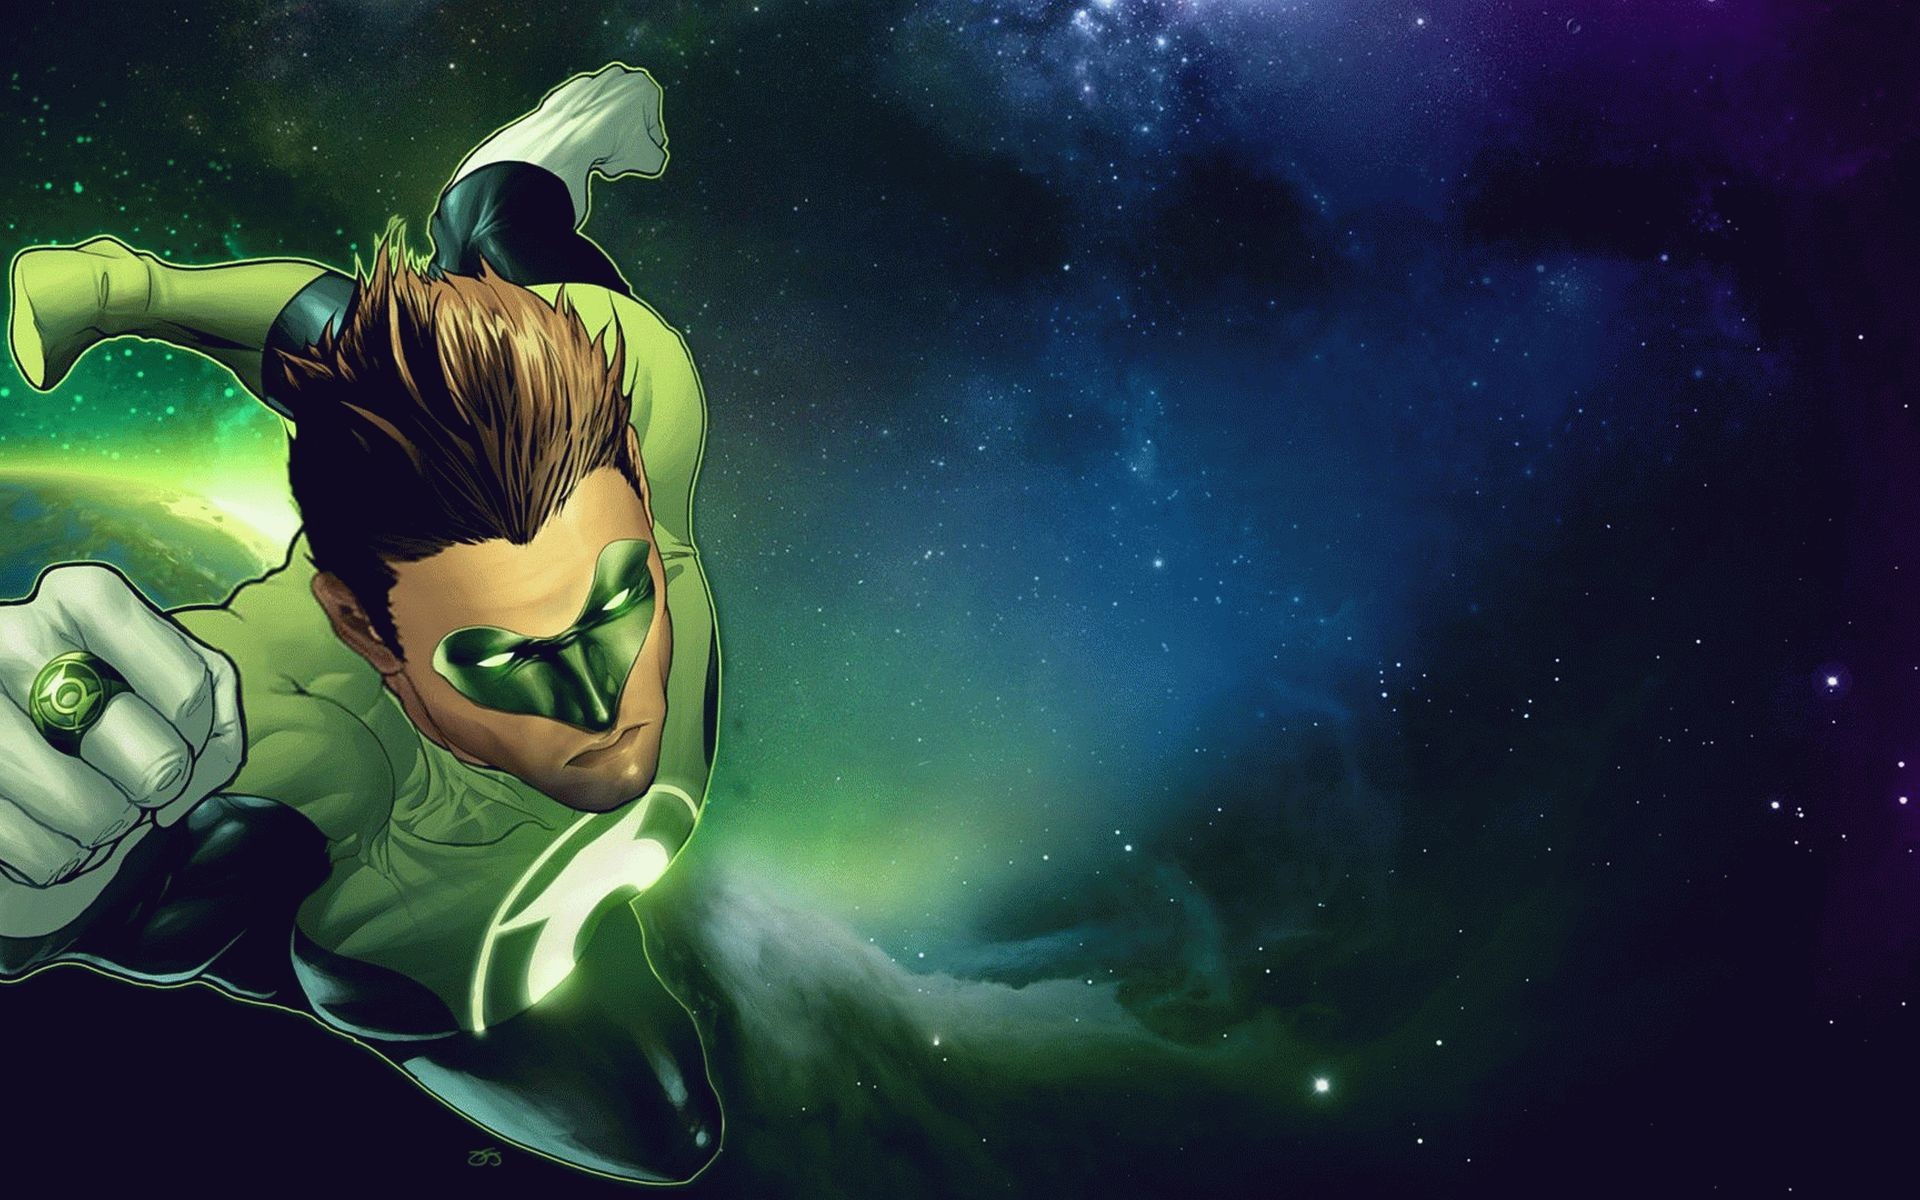 1920x1200 Green Lantern HD Background, Picture, Image